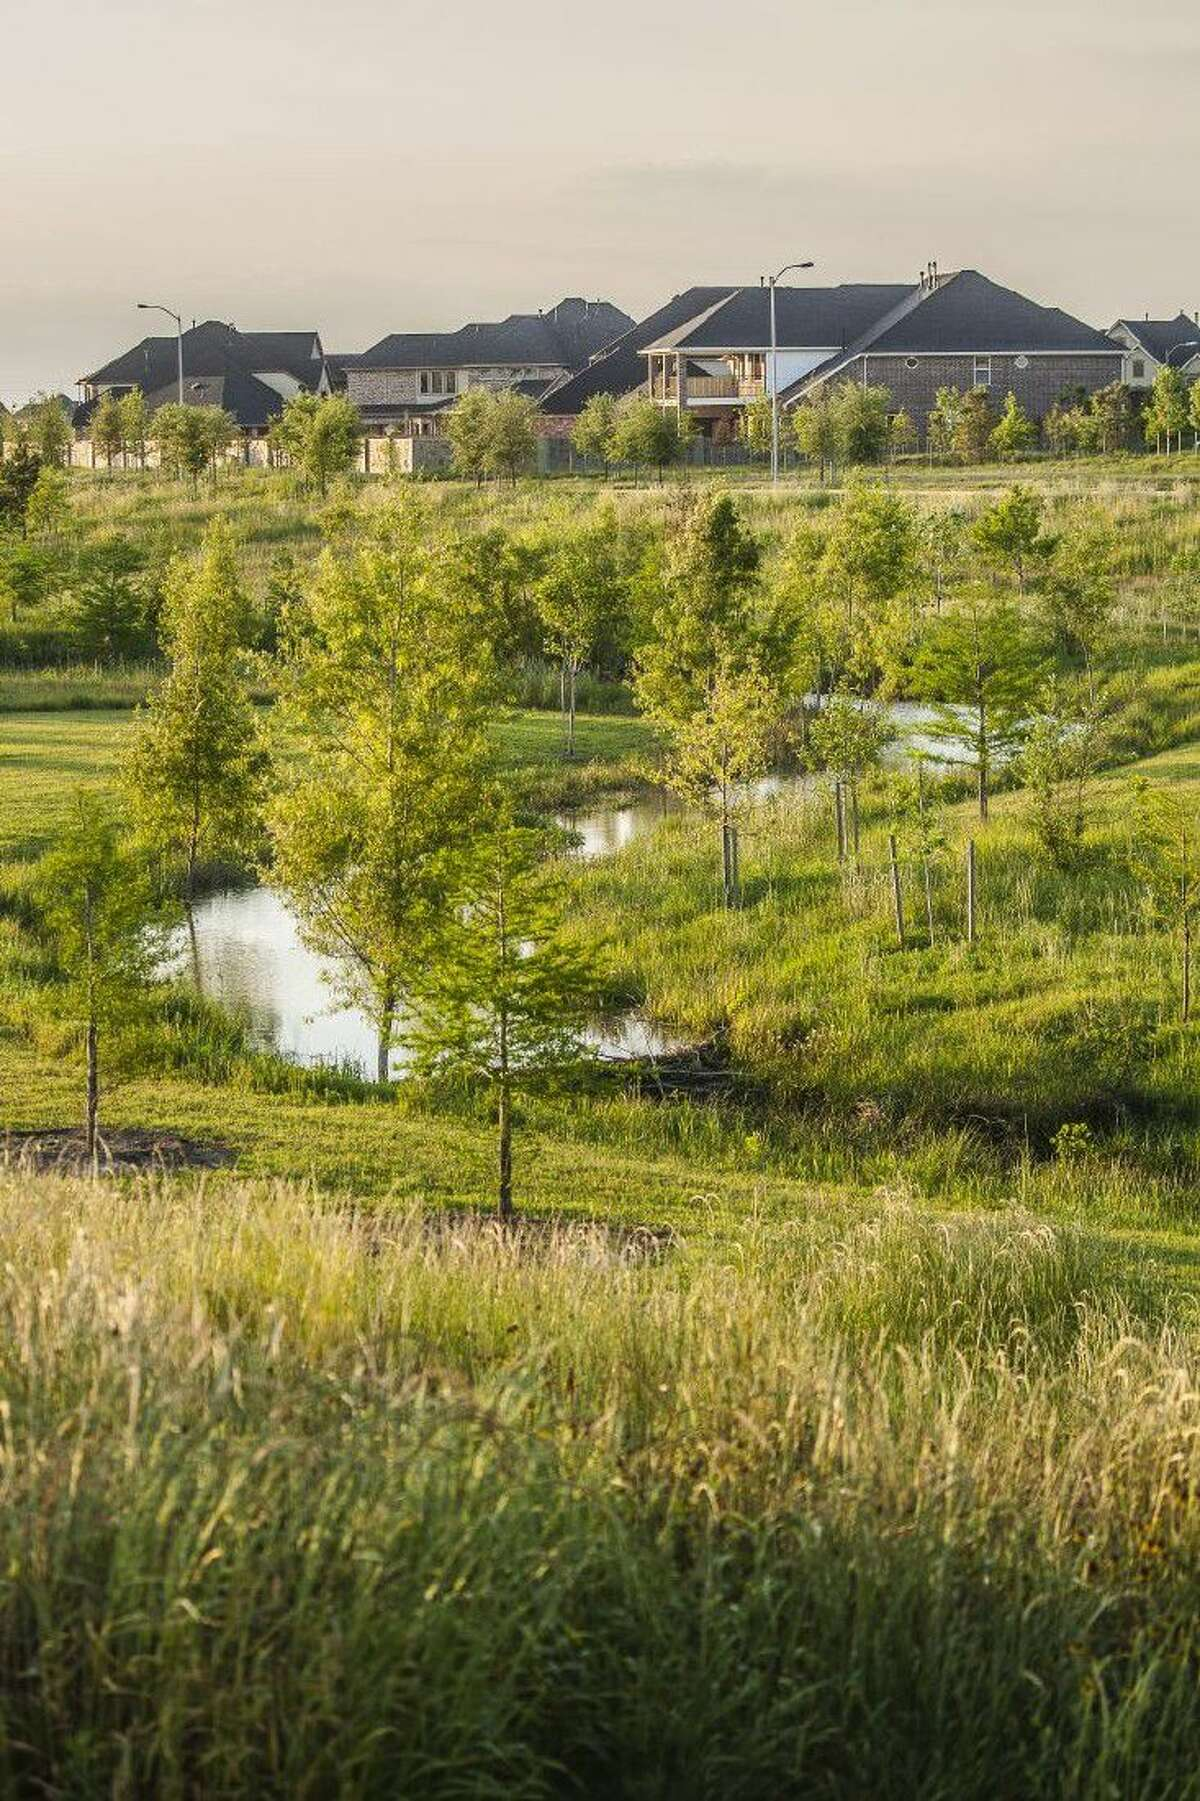 Cross Creek Ranch has been named a winner in the 2016 Arbor Awards, presented by Trees for Houston, a 30-year-old organization that has planted nearly half a million trees throughout Houston.